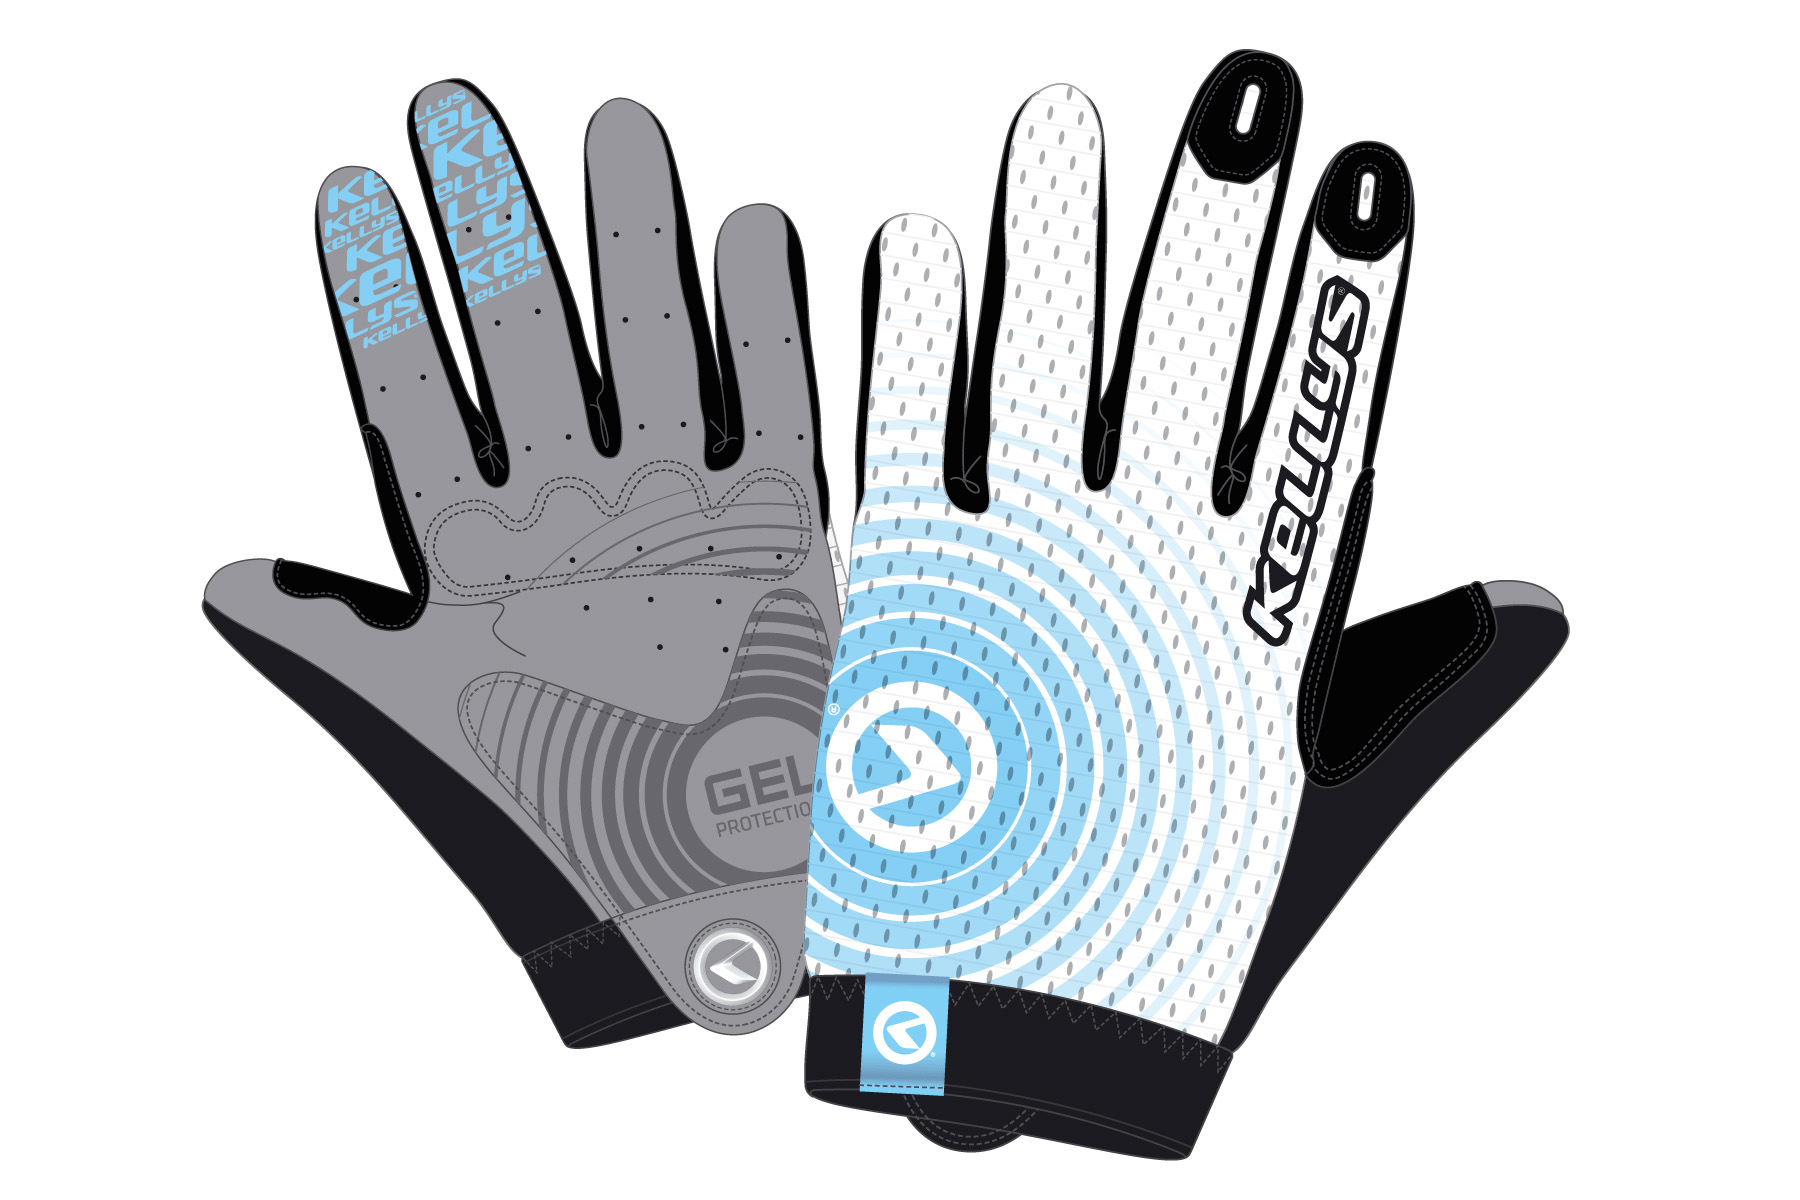 Handschuhe INSTINCT long white-blue L - Handschuhe INSTINCT long white-blue L